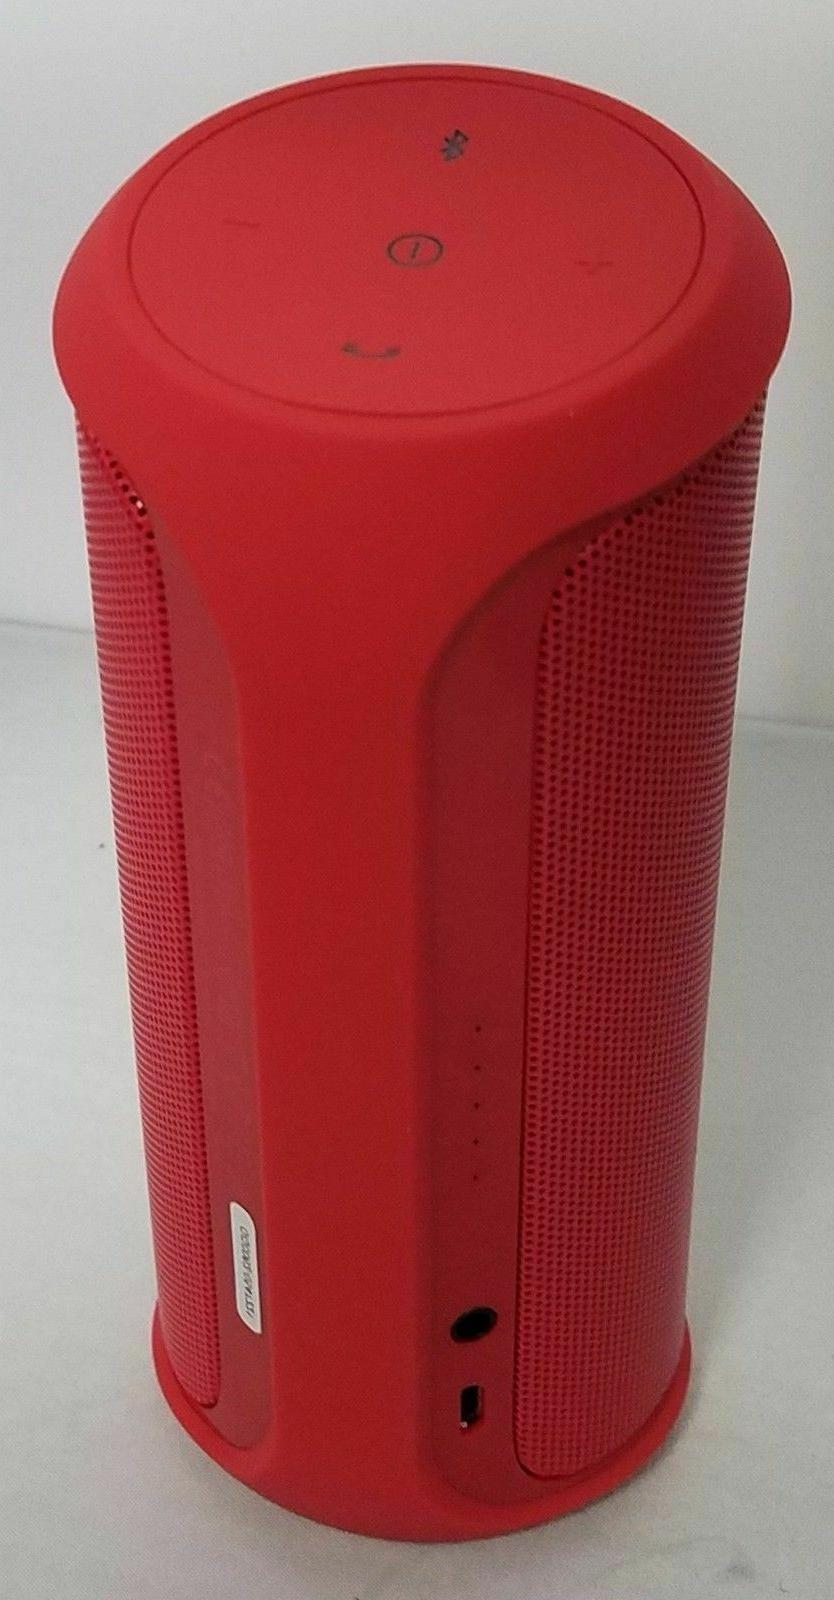 JBL 2 Portable Wireless Bluetooth Speaker NFC Kardon Red New